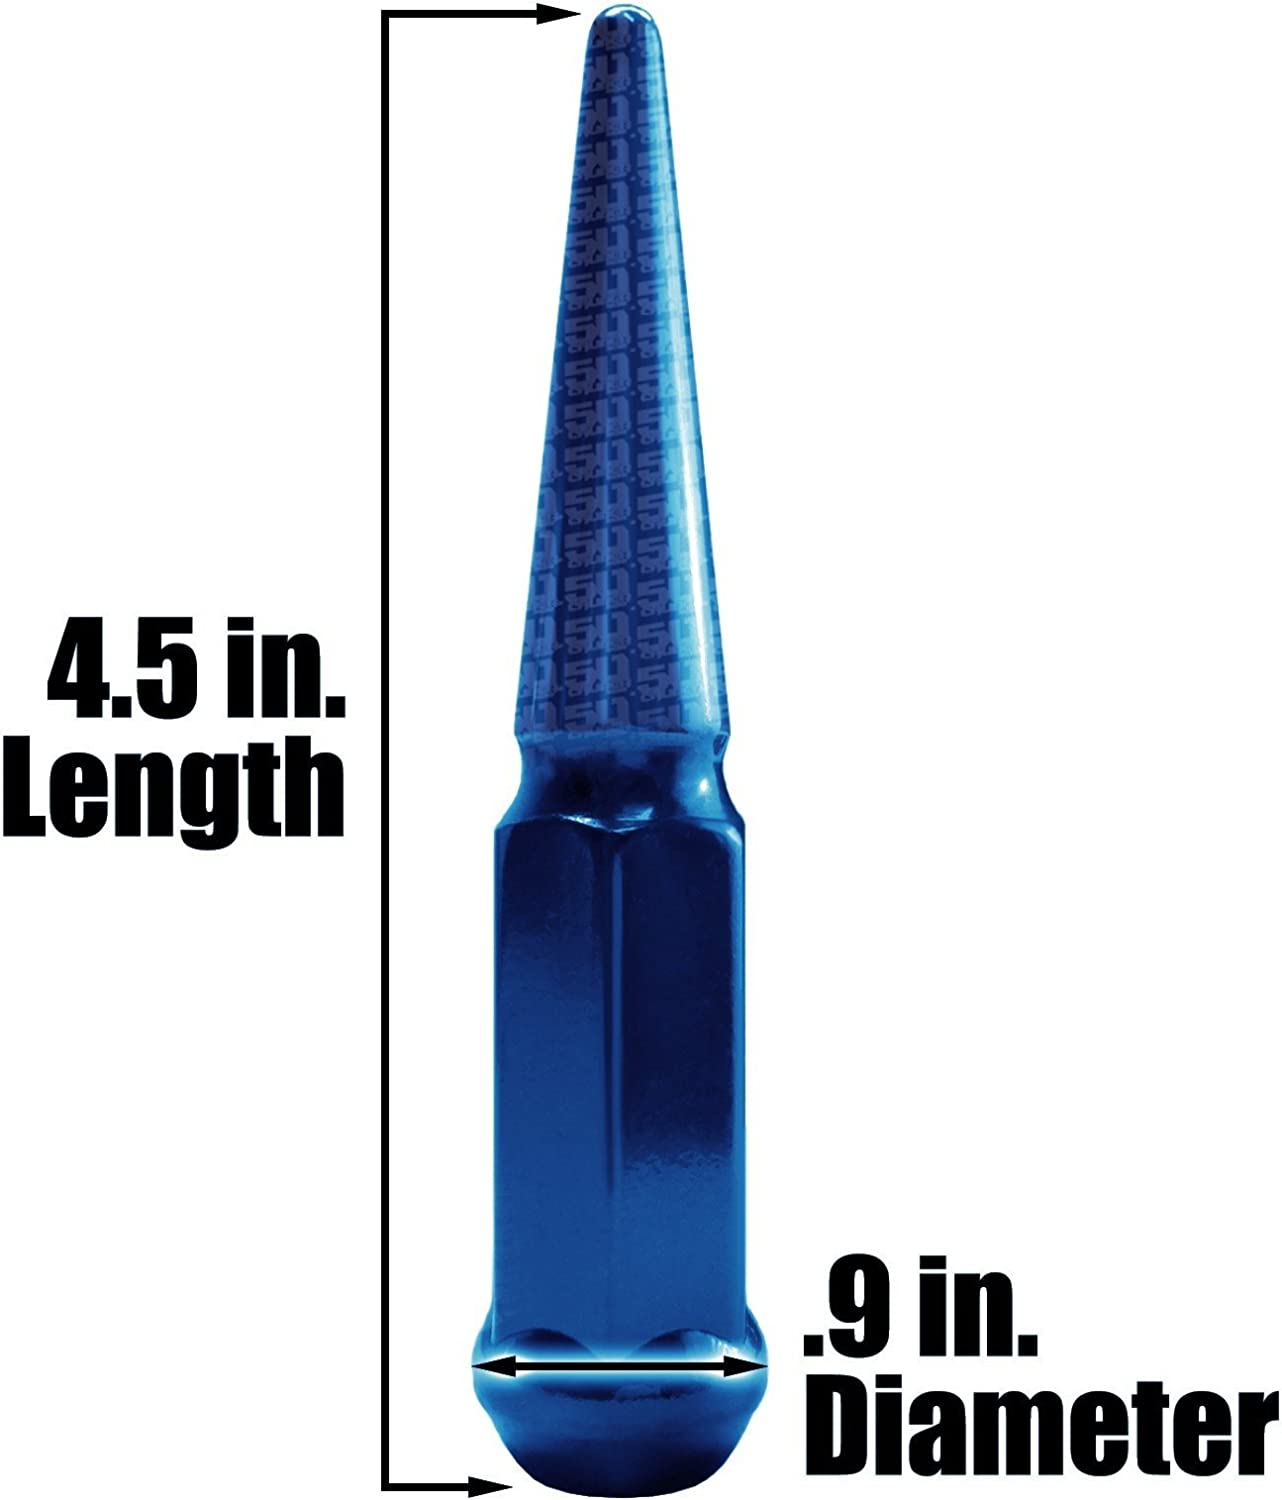 50 Caliber Racing Set of 24 Blue Spiked Lug Nuts and More! Chrysler 5296B17 Dodge Chevy Honda Fits Buick Hummer 12 x 1.5mm RH Thread Pitch Chevrolet GMC Ford Cadillac